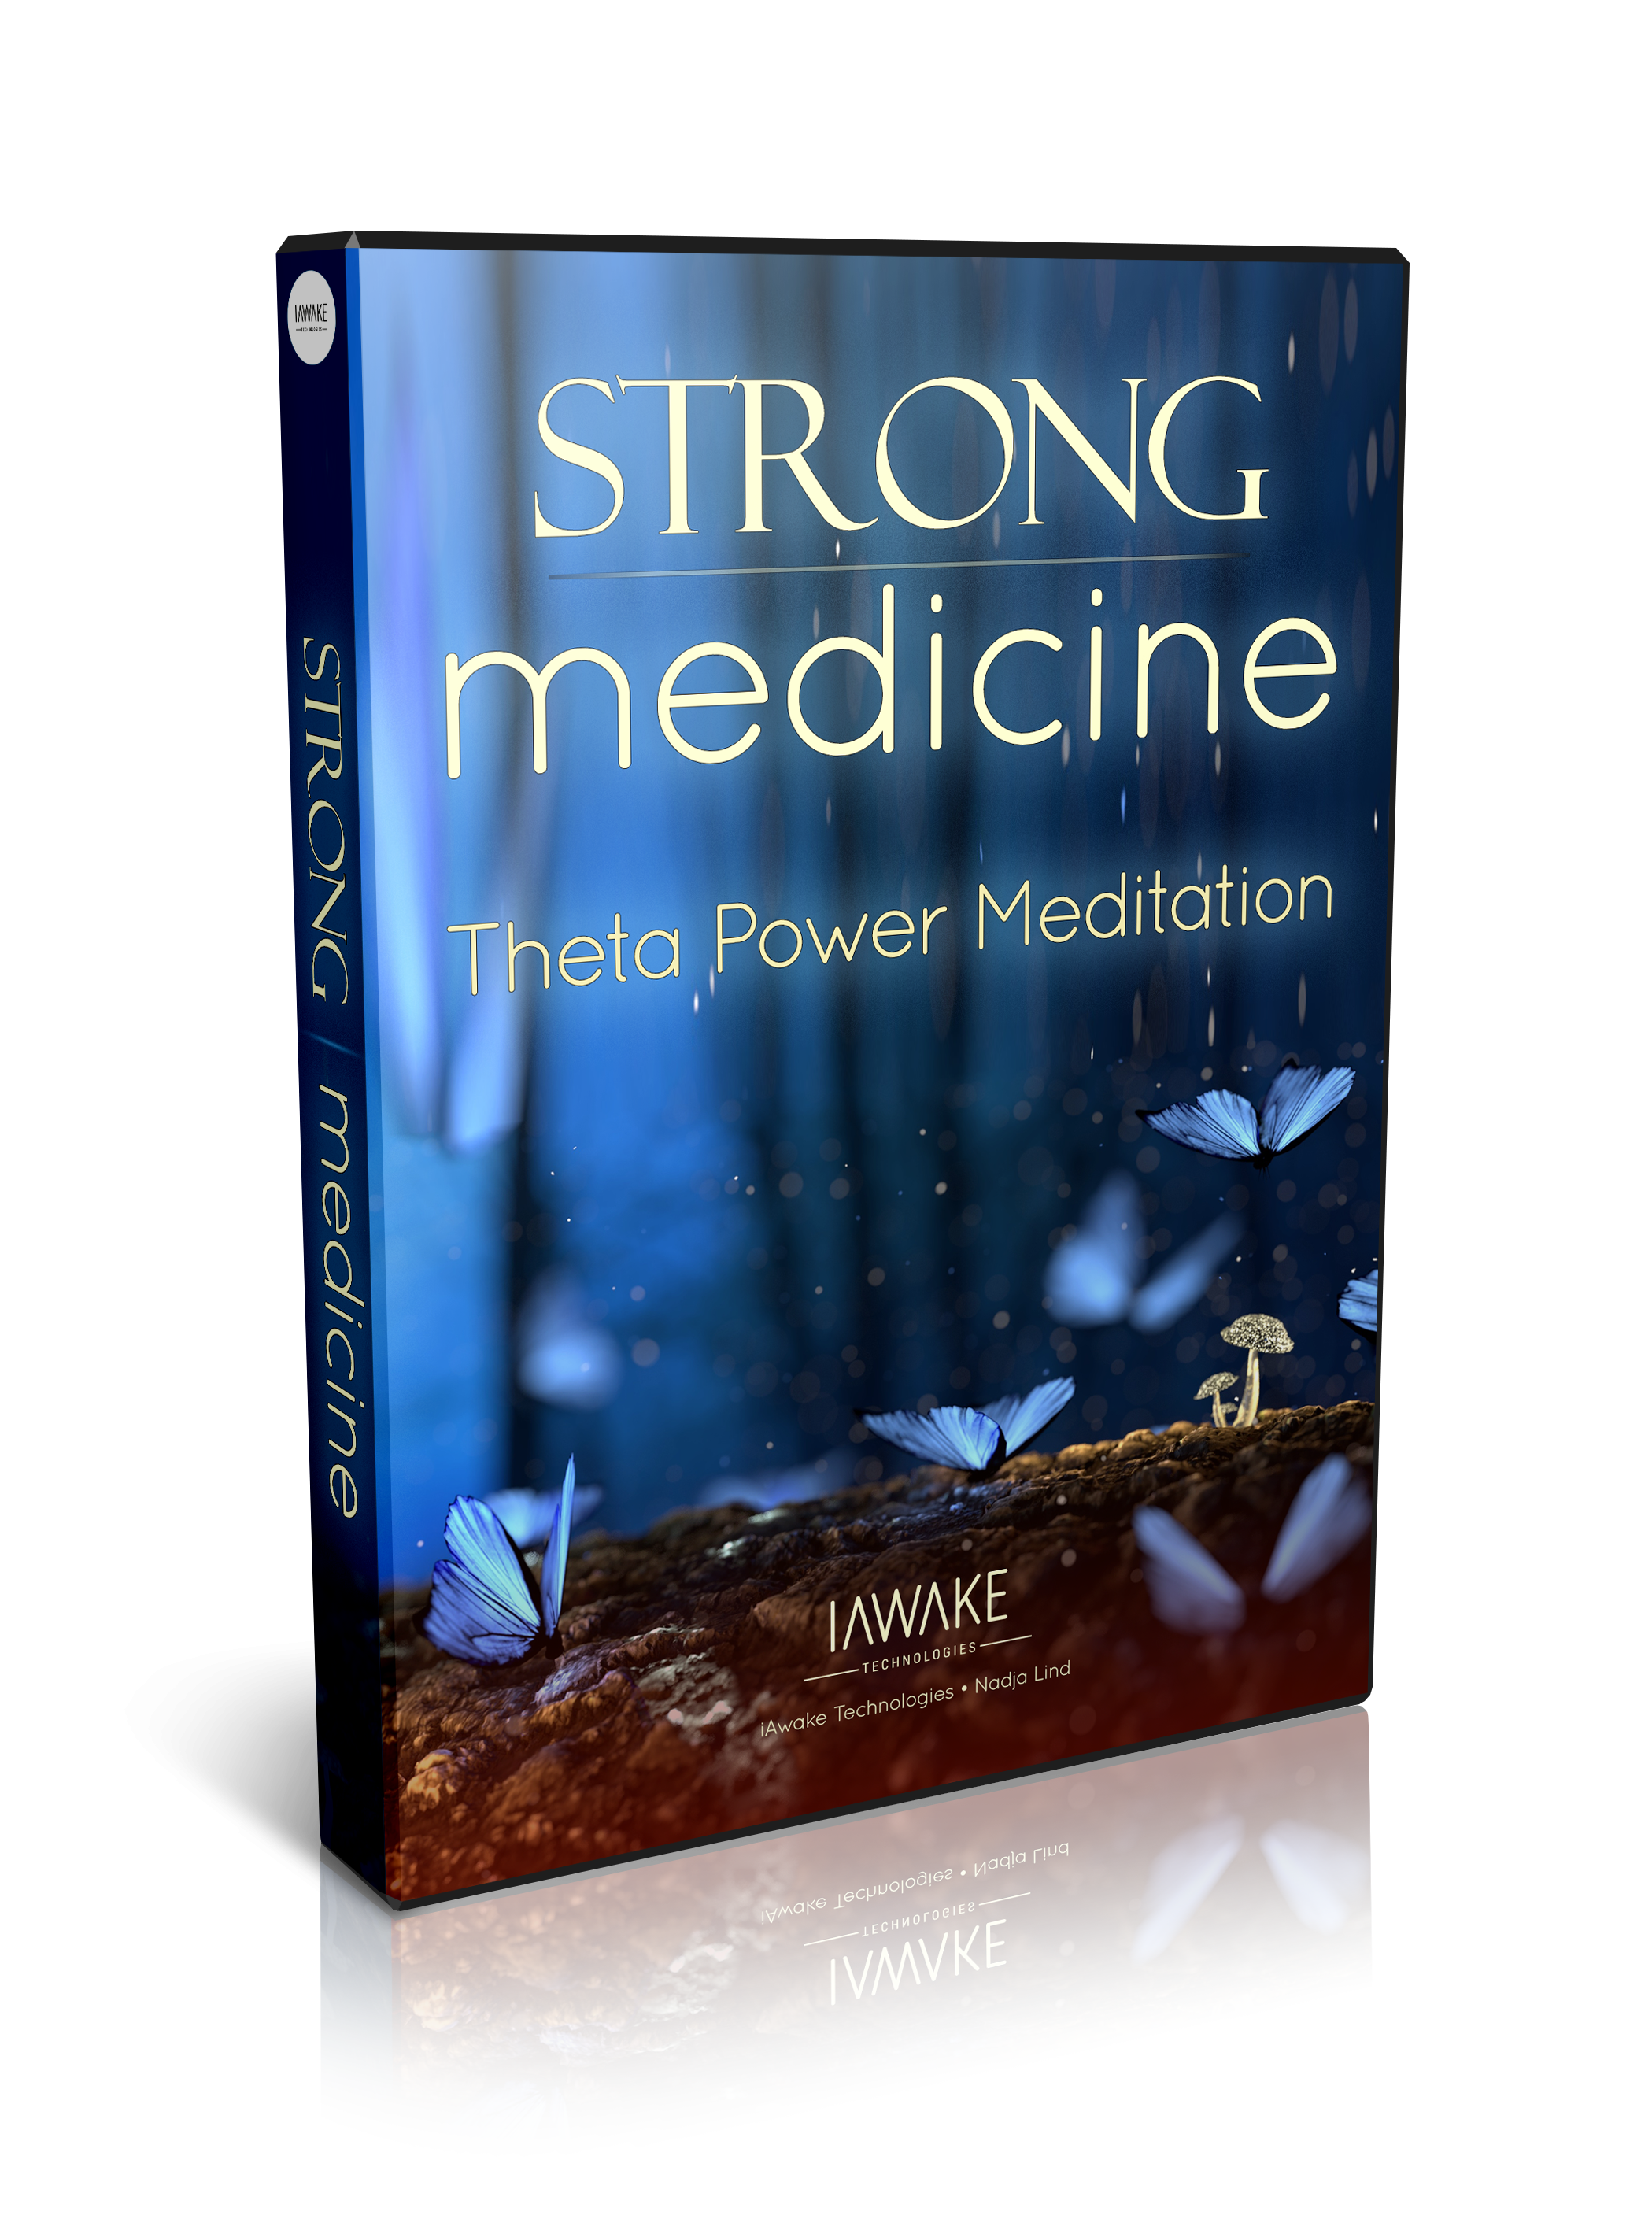 Introducing Strong Medicine! It's Not For Everyone - for deep, deep practice...